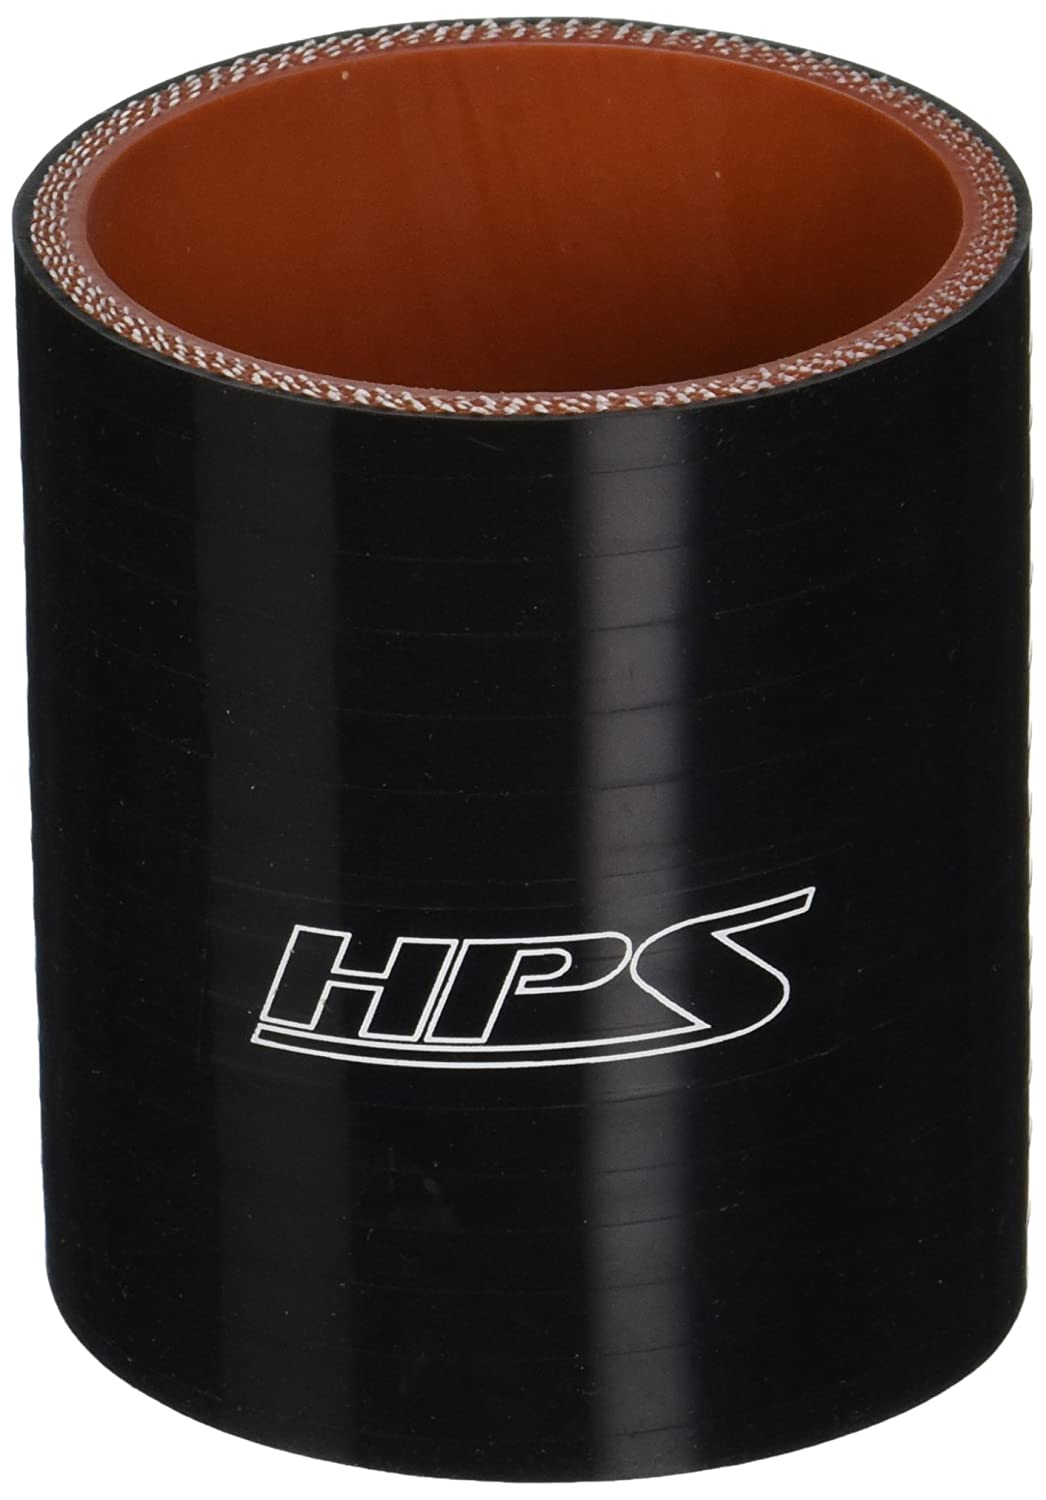 HPS HTSC-225-BLK Silicone High Temperature 4-Ply Reinforced Straight Coupler Hose, 100 PSI Maximum Pressure, 3' Length, 2.25' ID, Black 3 Length 2.25 ID HPS Silicone Hoses